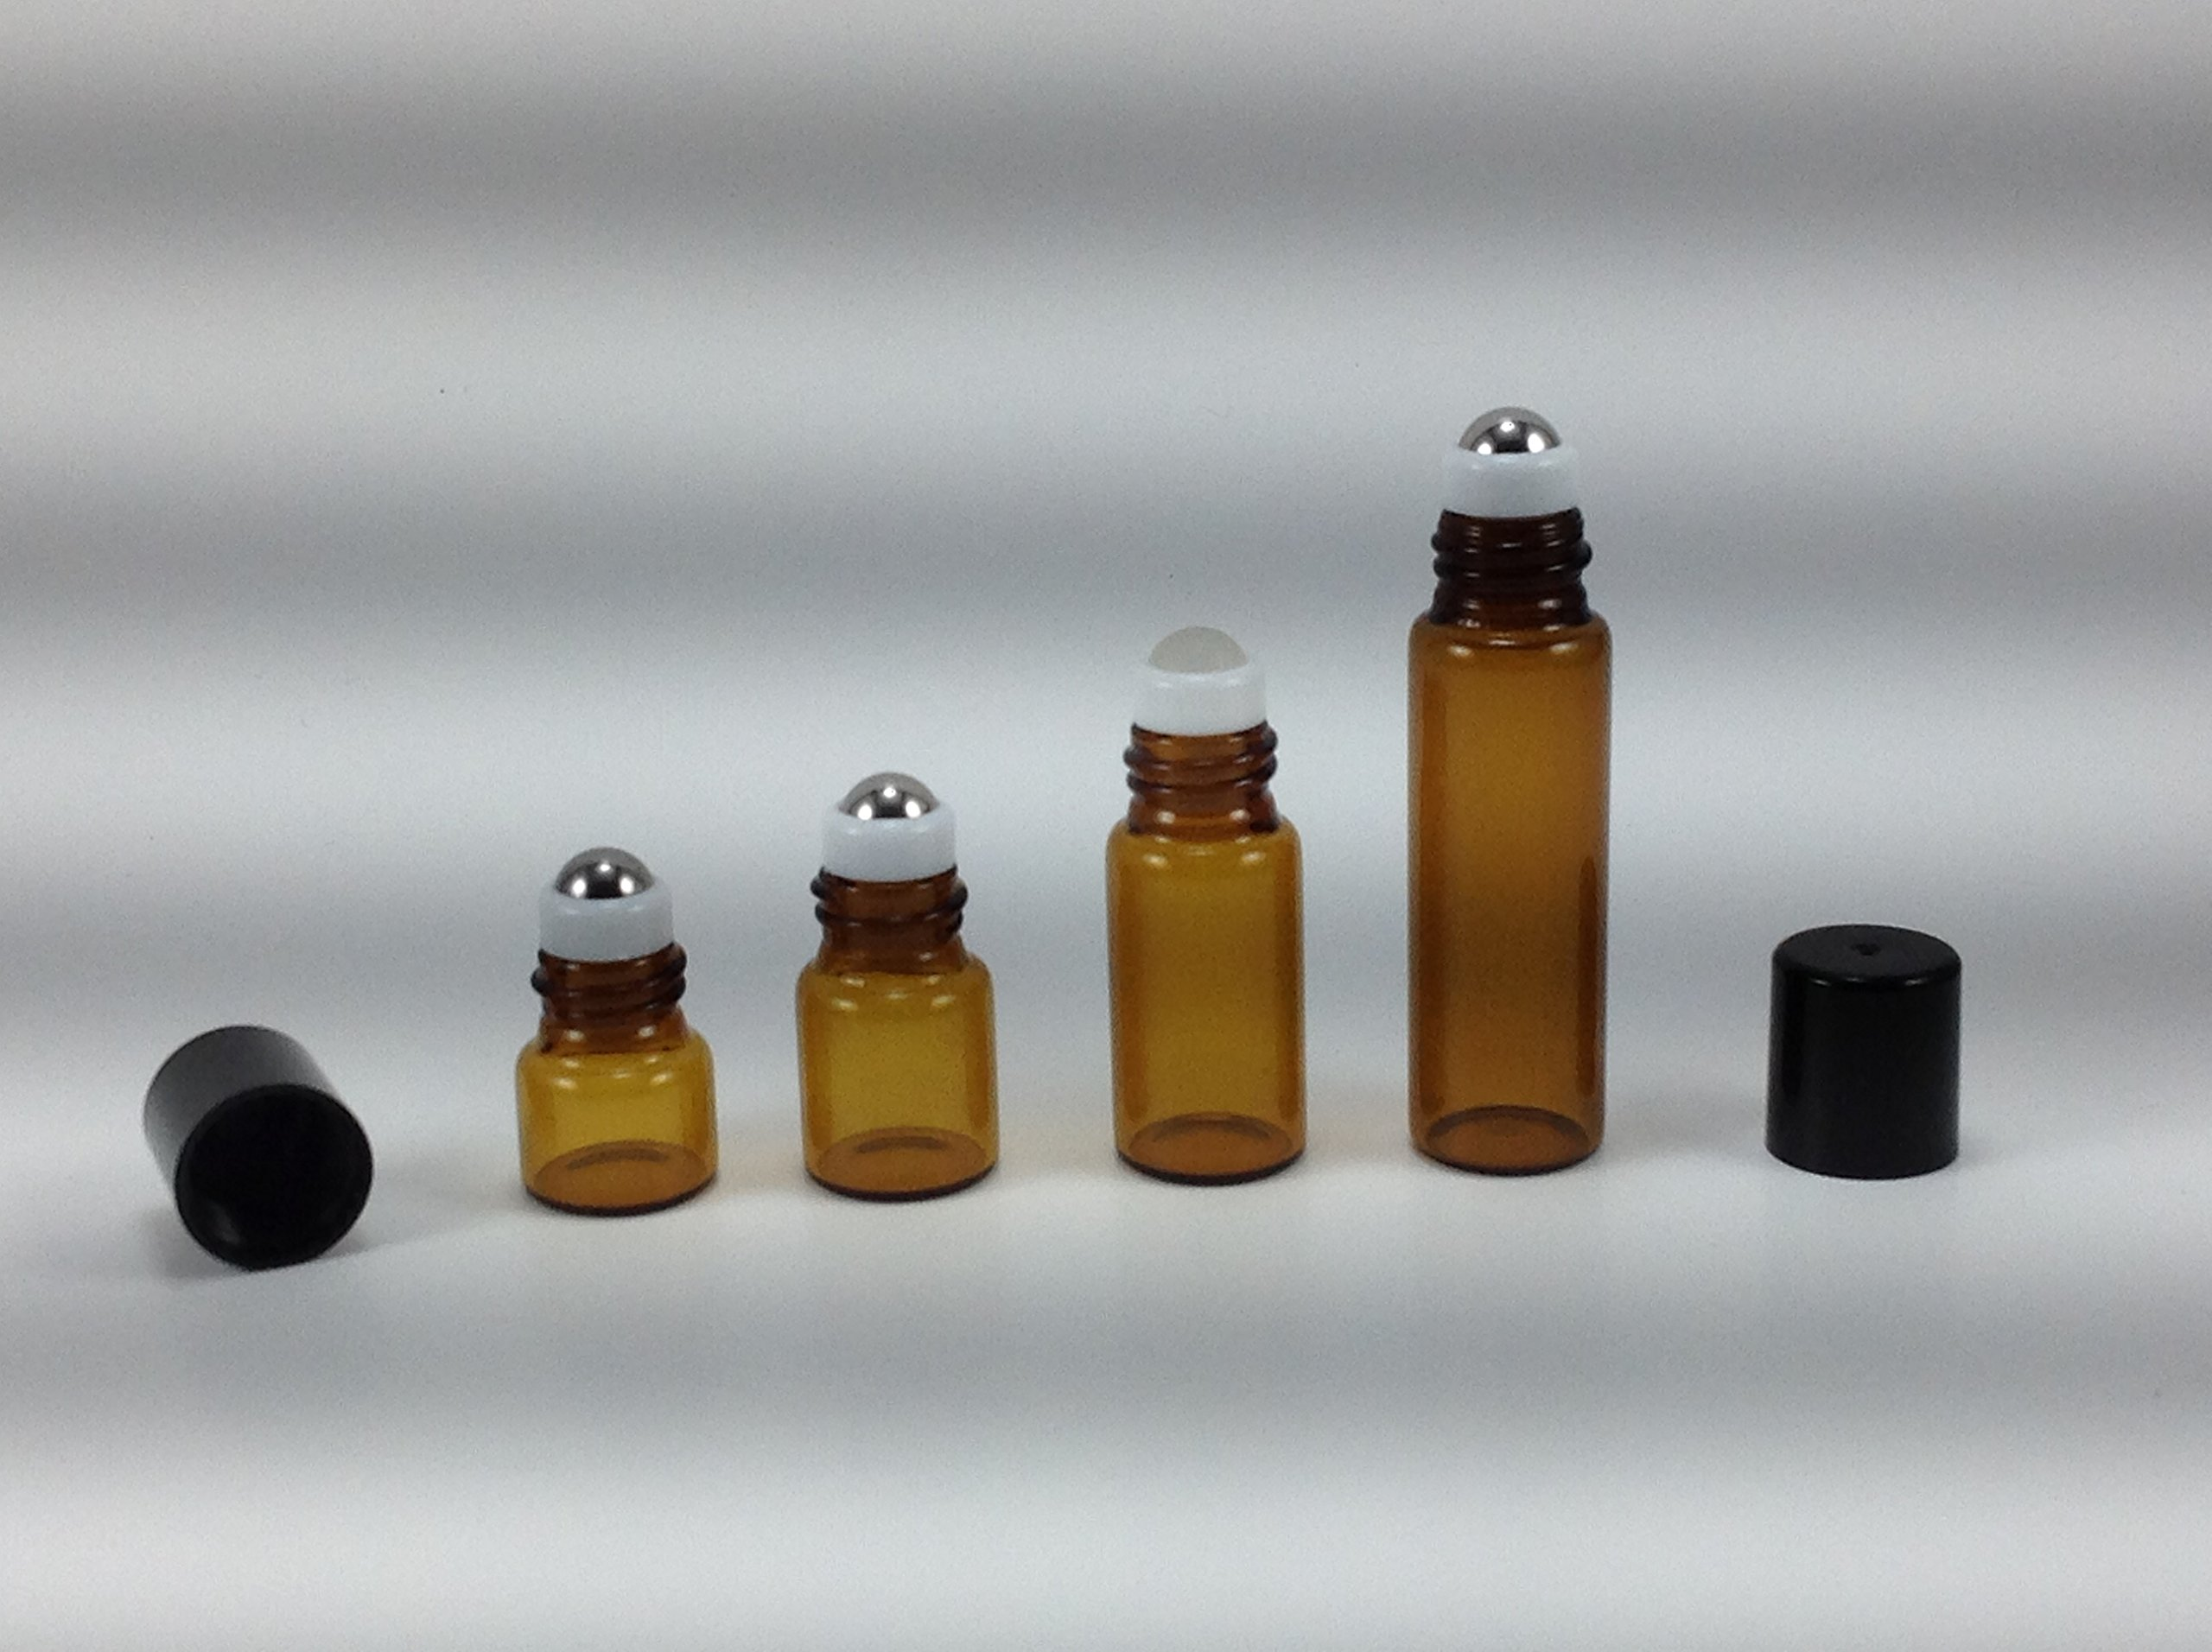 USA 144-1 ml (1/4 Dram) Amber Glass Micro Mini Roll-on Glass Bottles with Stainless Steel Roller Balls - Refillable Aromatherapy Essential Oil Roll On (144)